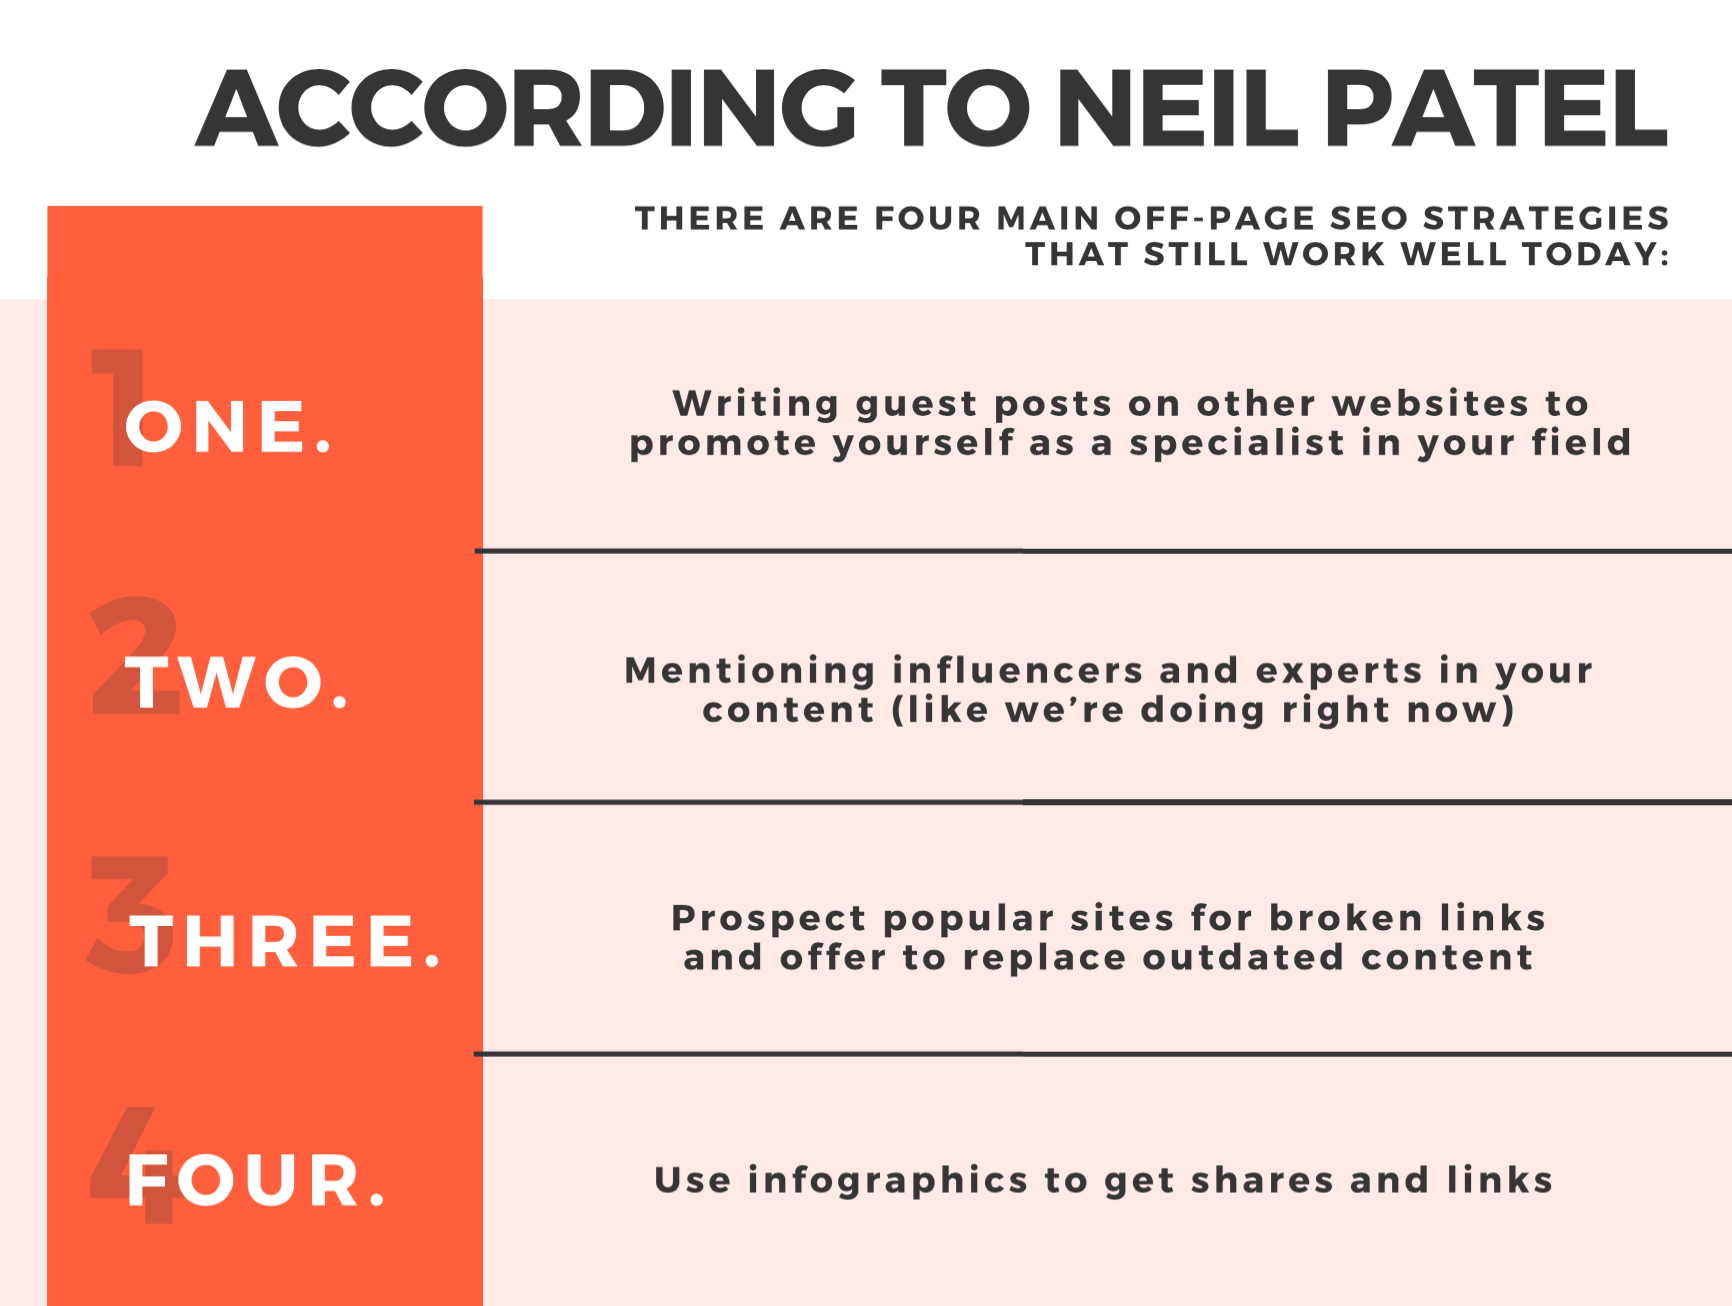 According to Neil Patel